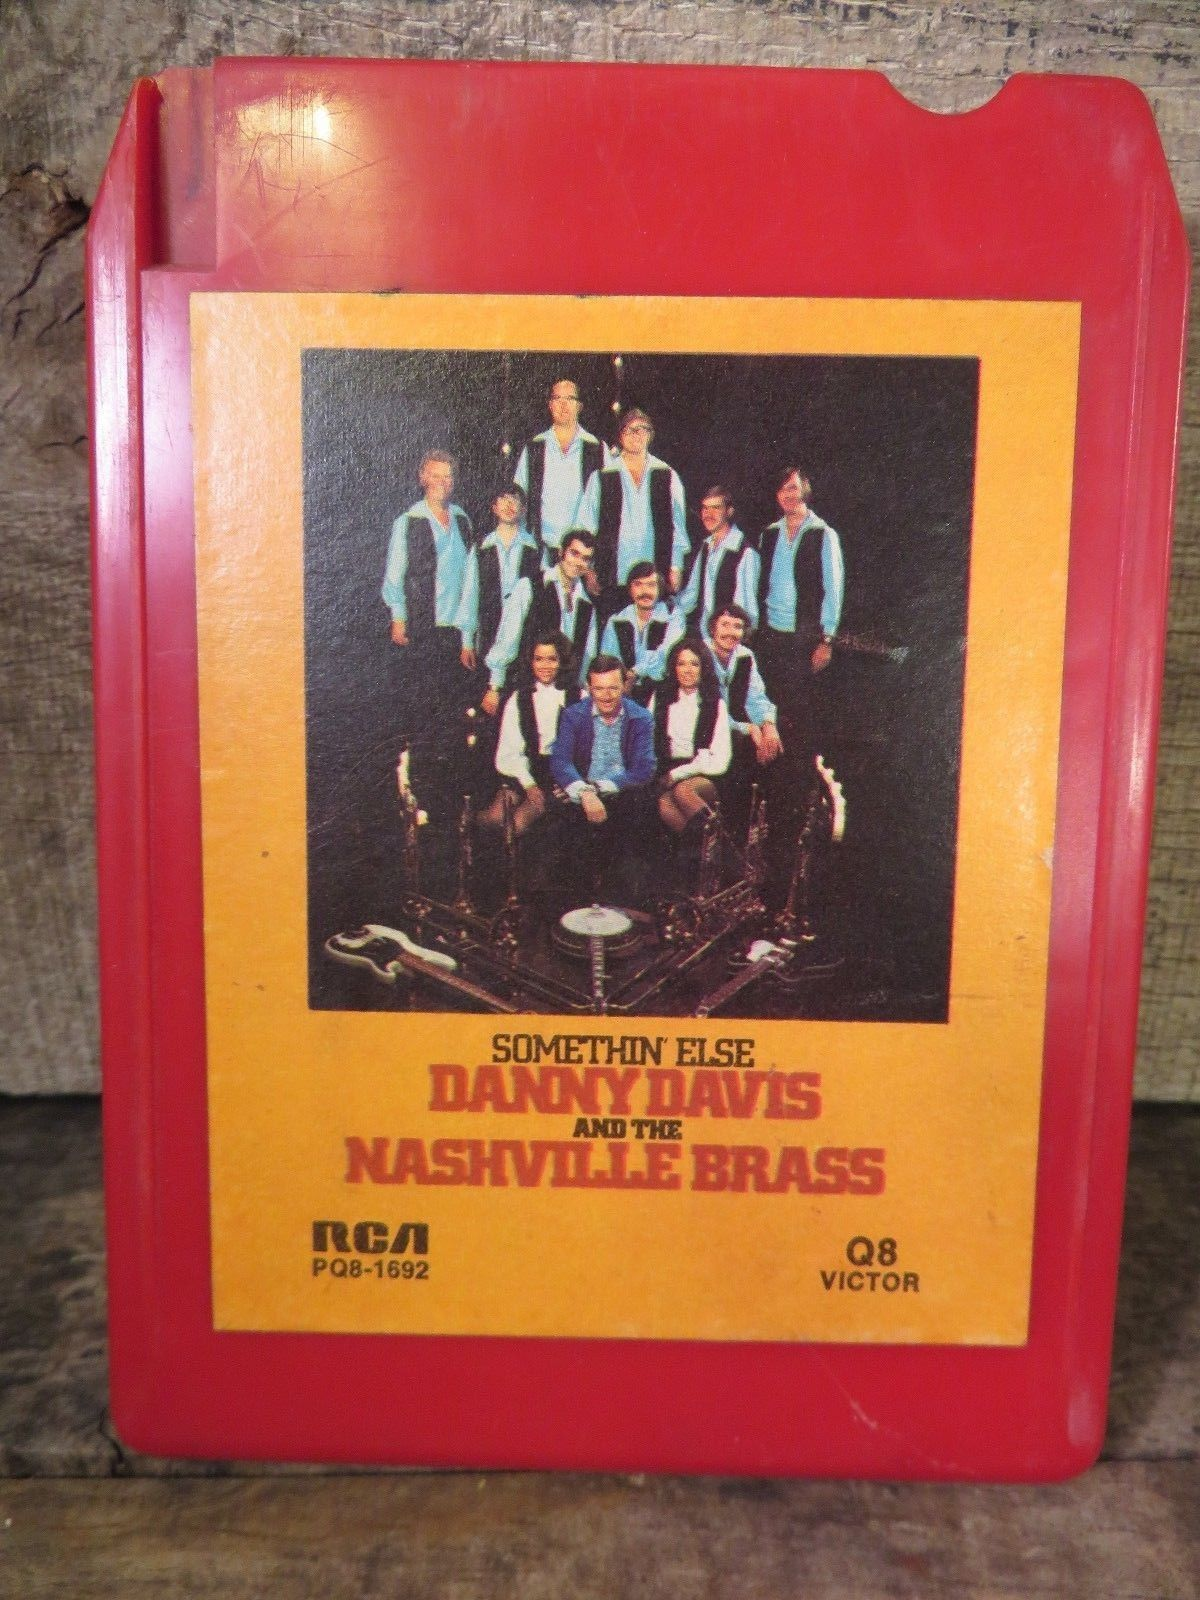 Primary image for Danny Davis Nashville Messing Somethin Else (8-Track Band, PQ8-1692) Quadrofonie